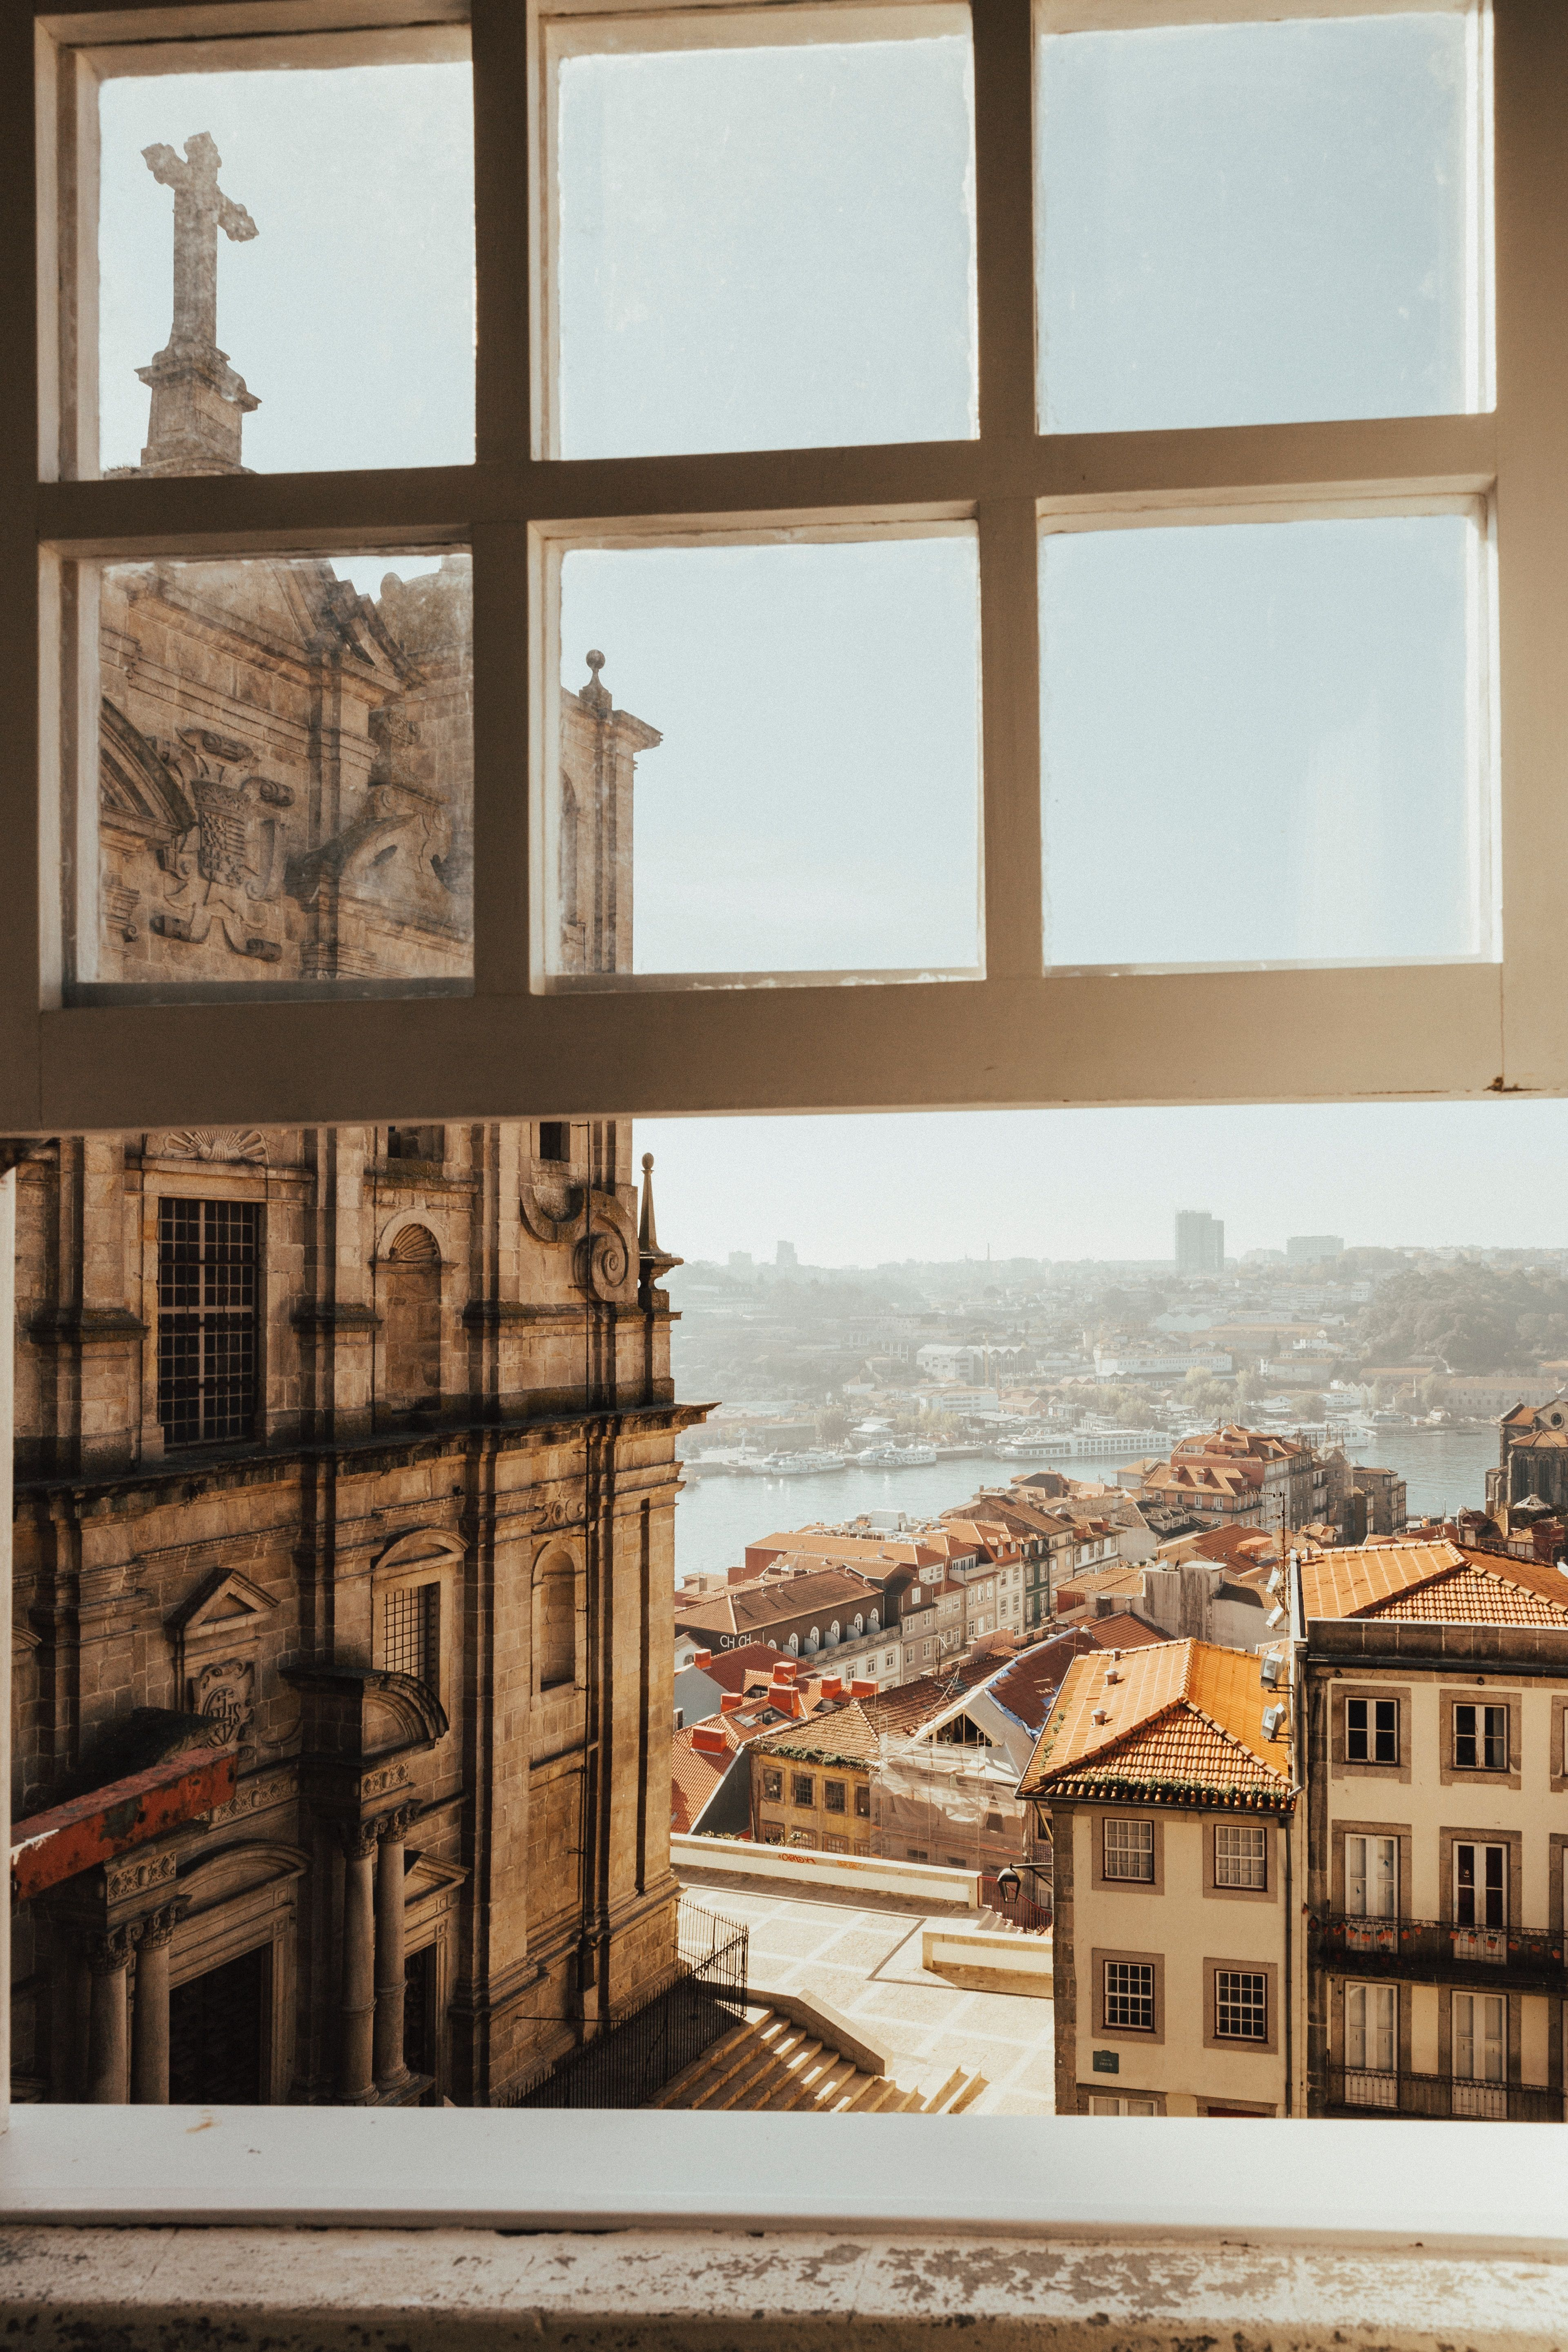 Porto: it's here that you'll find places like a former shopping centre taken over by musicians who use old shops as rehearsal studios, or abandoned warehouses which have been turned into cool concept stores and curated spaces.  #SUITCASE #SUITCASEMAGAZINE #SUITCASETRAVELS #Travel #Holiday #Wanderlust #BeautifulDestinations #Destination #Inspiration #WheretoTravel #placestotravel